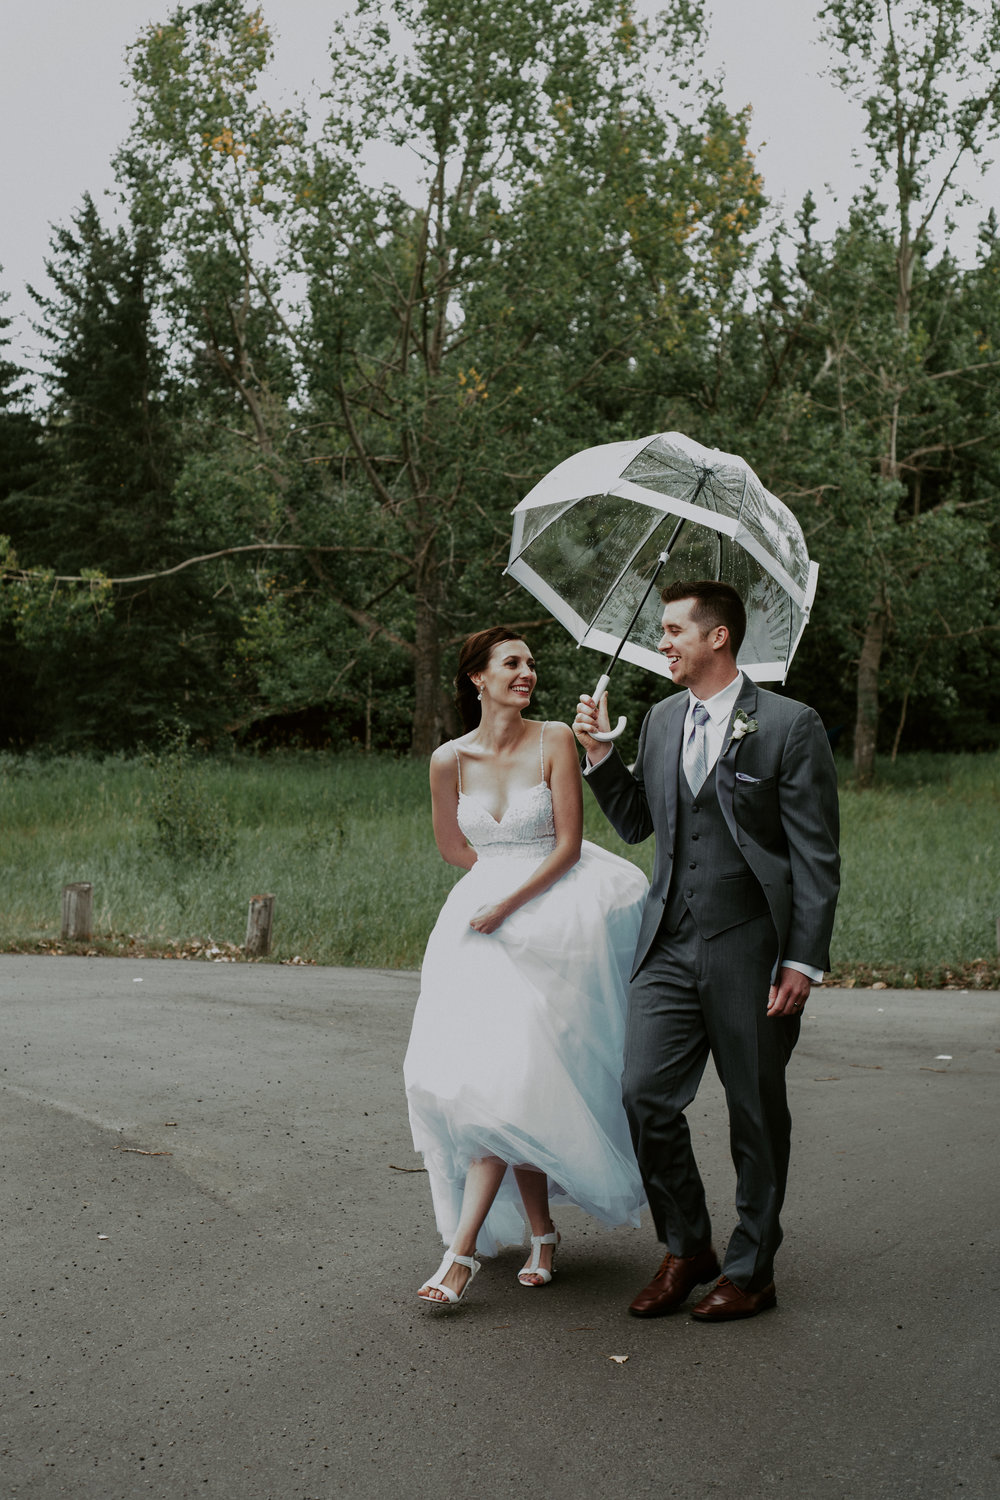 Calgary Wedding Photographer - Grey Lily Photography 45.jpg